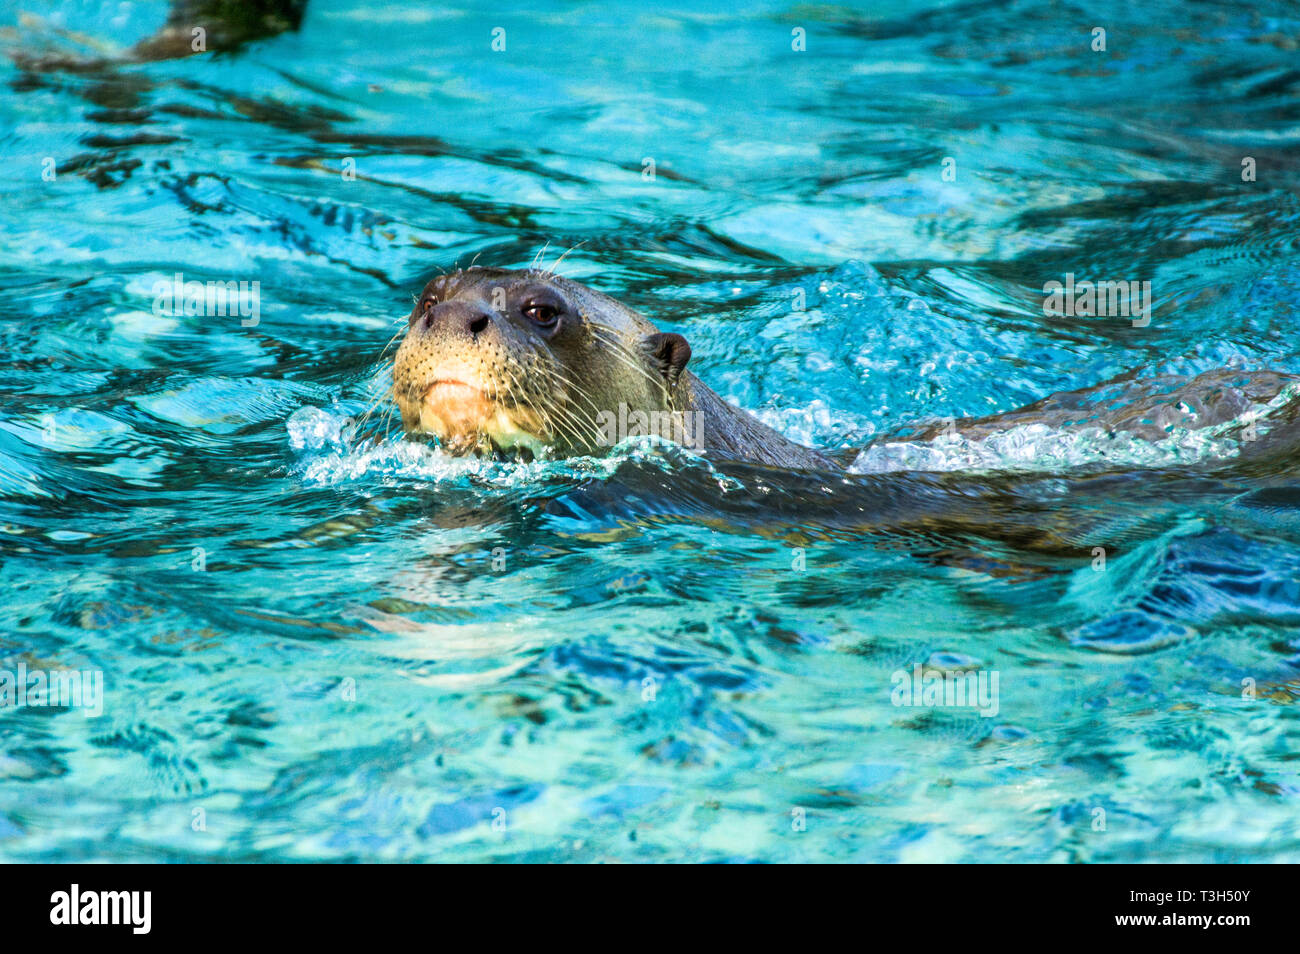 Brazilian Giant Otter (Pteronura braziliensis).Adult in water. - Stock Image